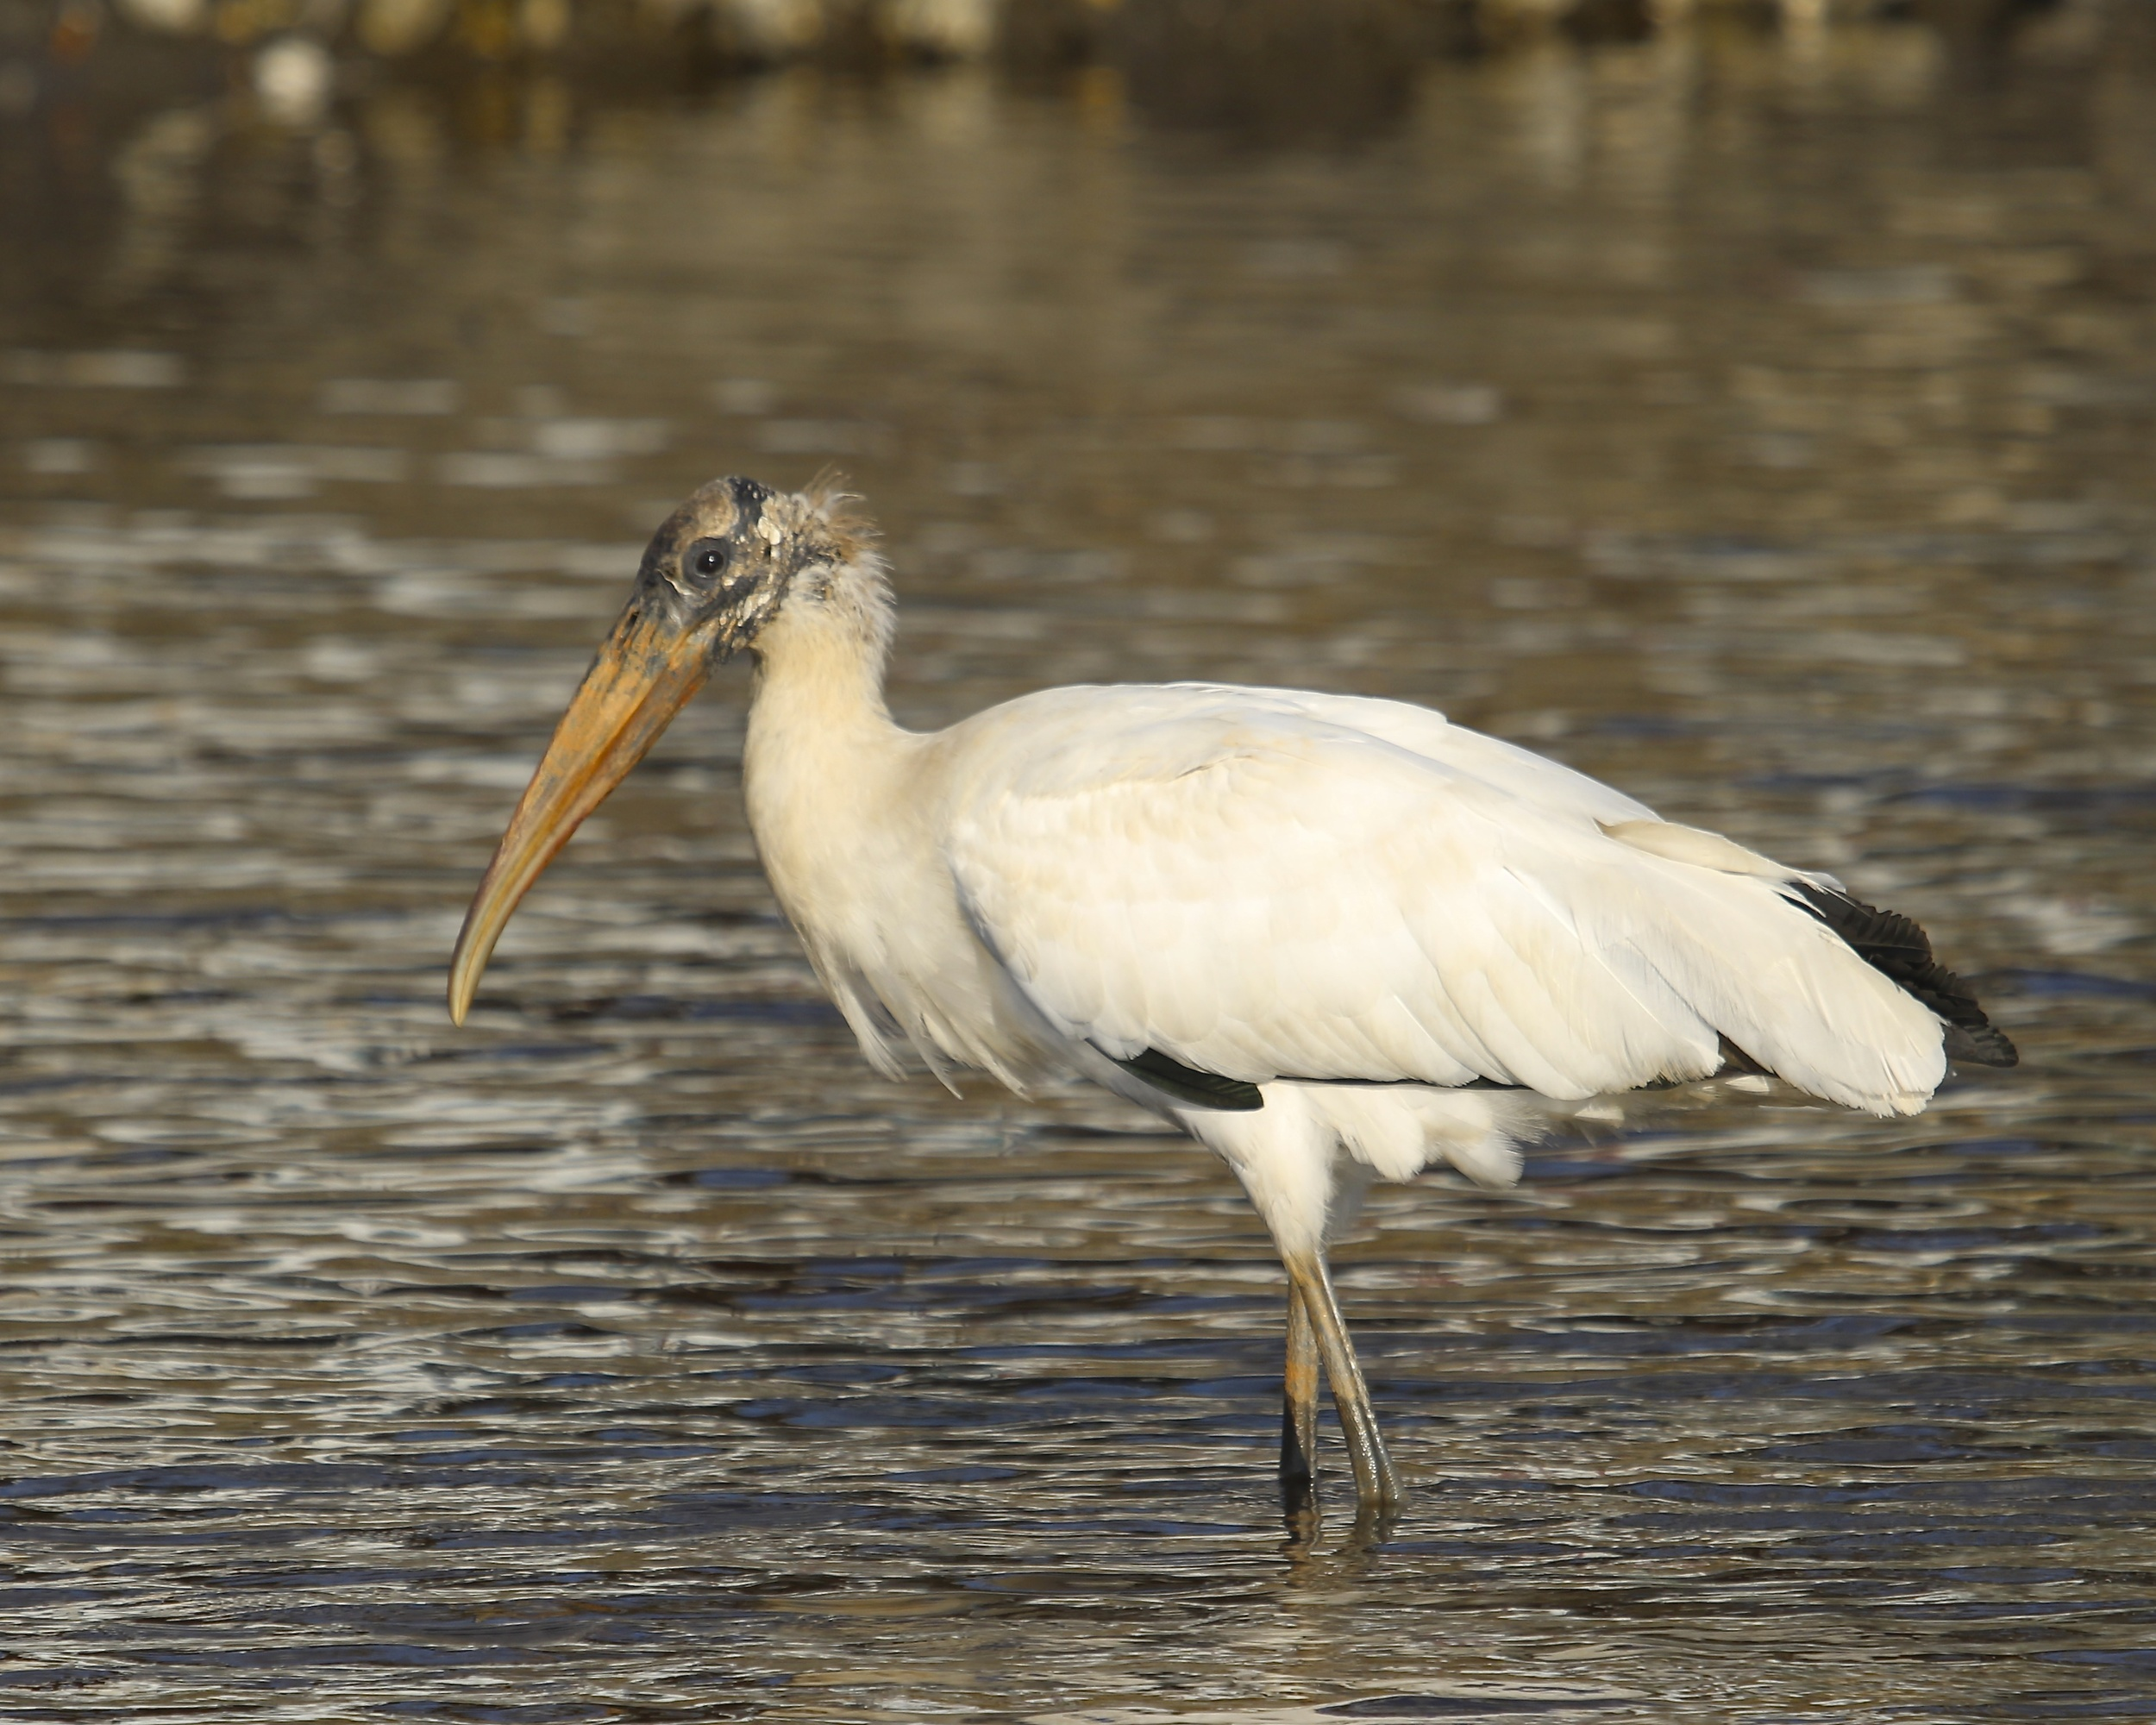 Who ate all the food said the Wood Stork!